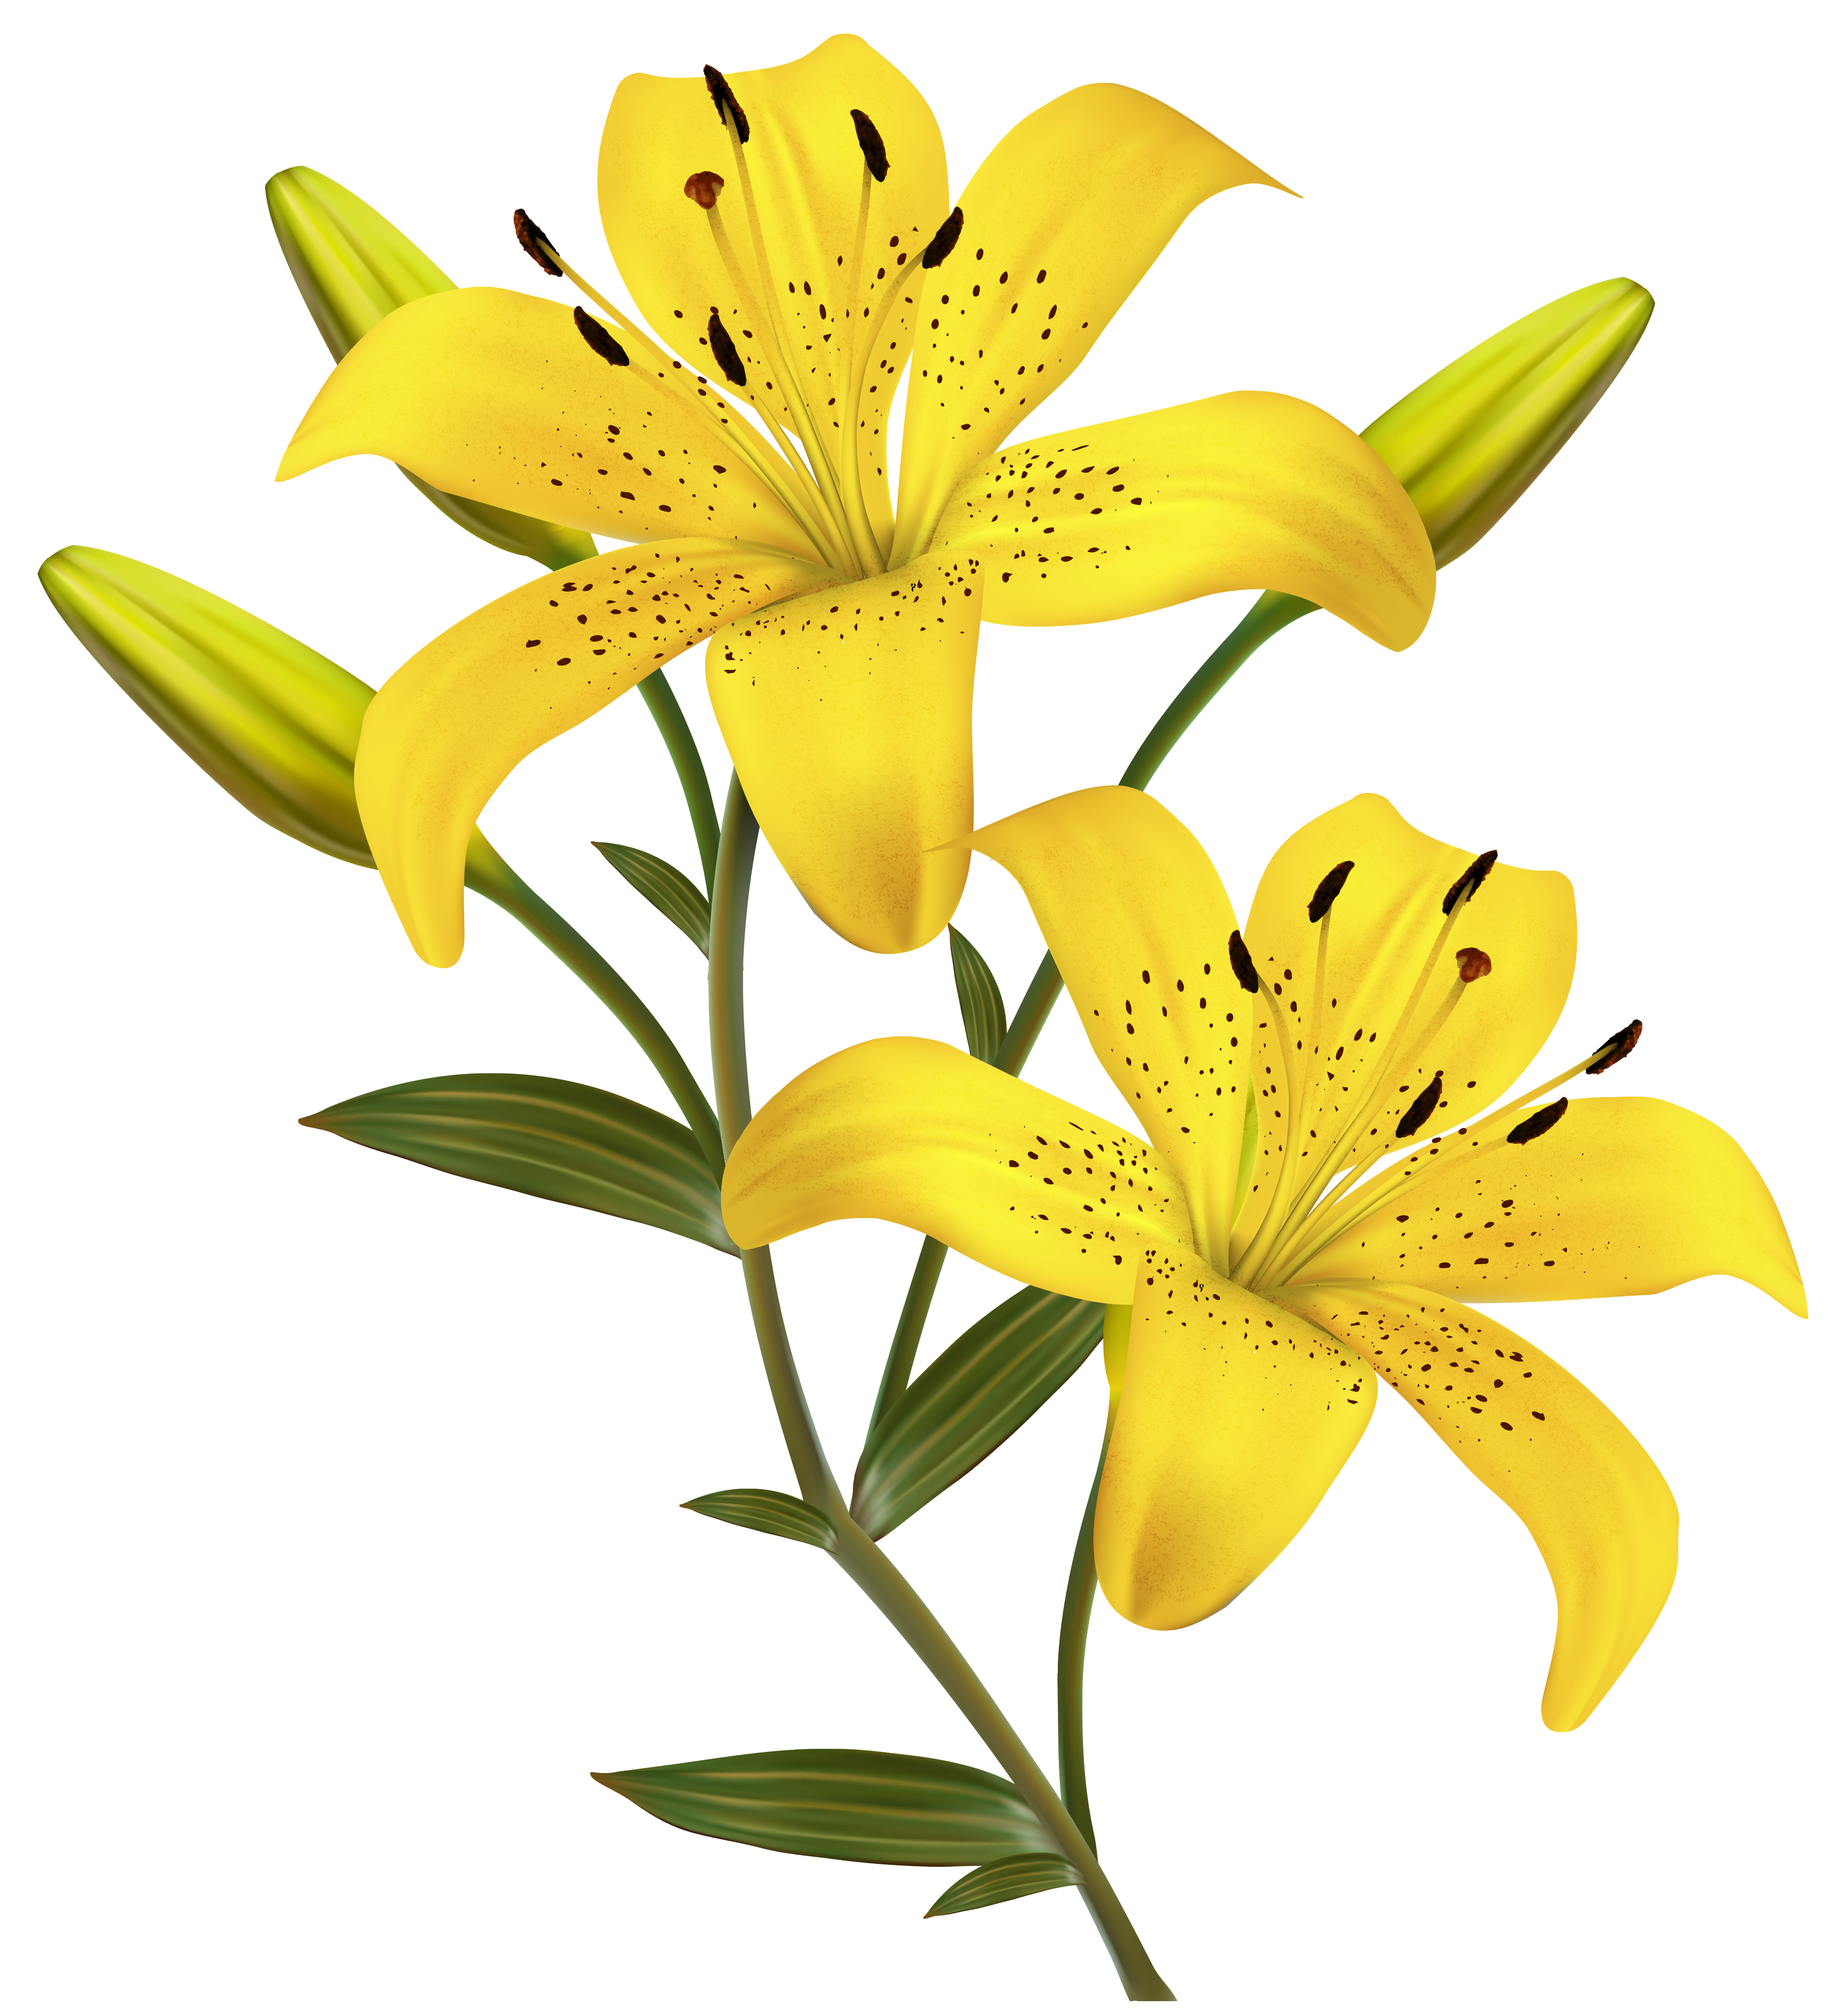 Daffodil clipart lily. Transparent png clip art